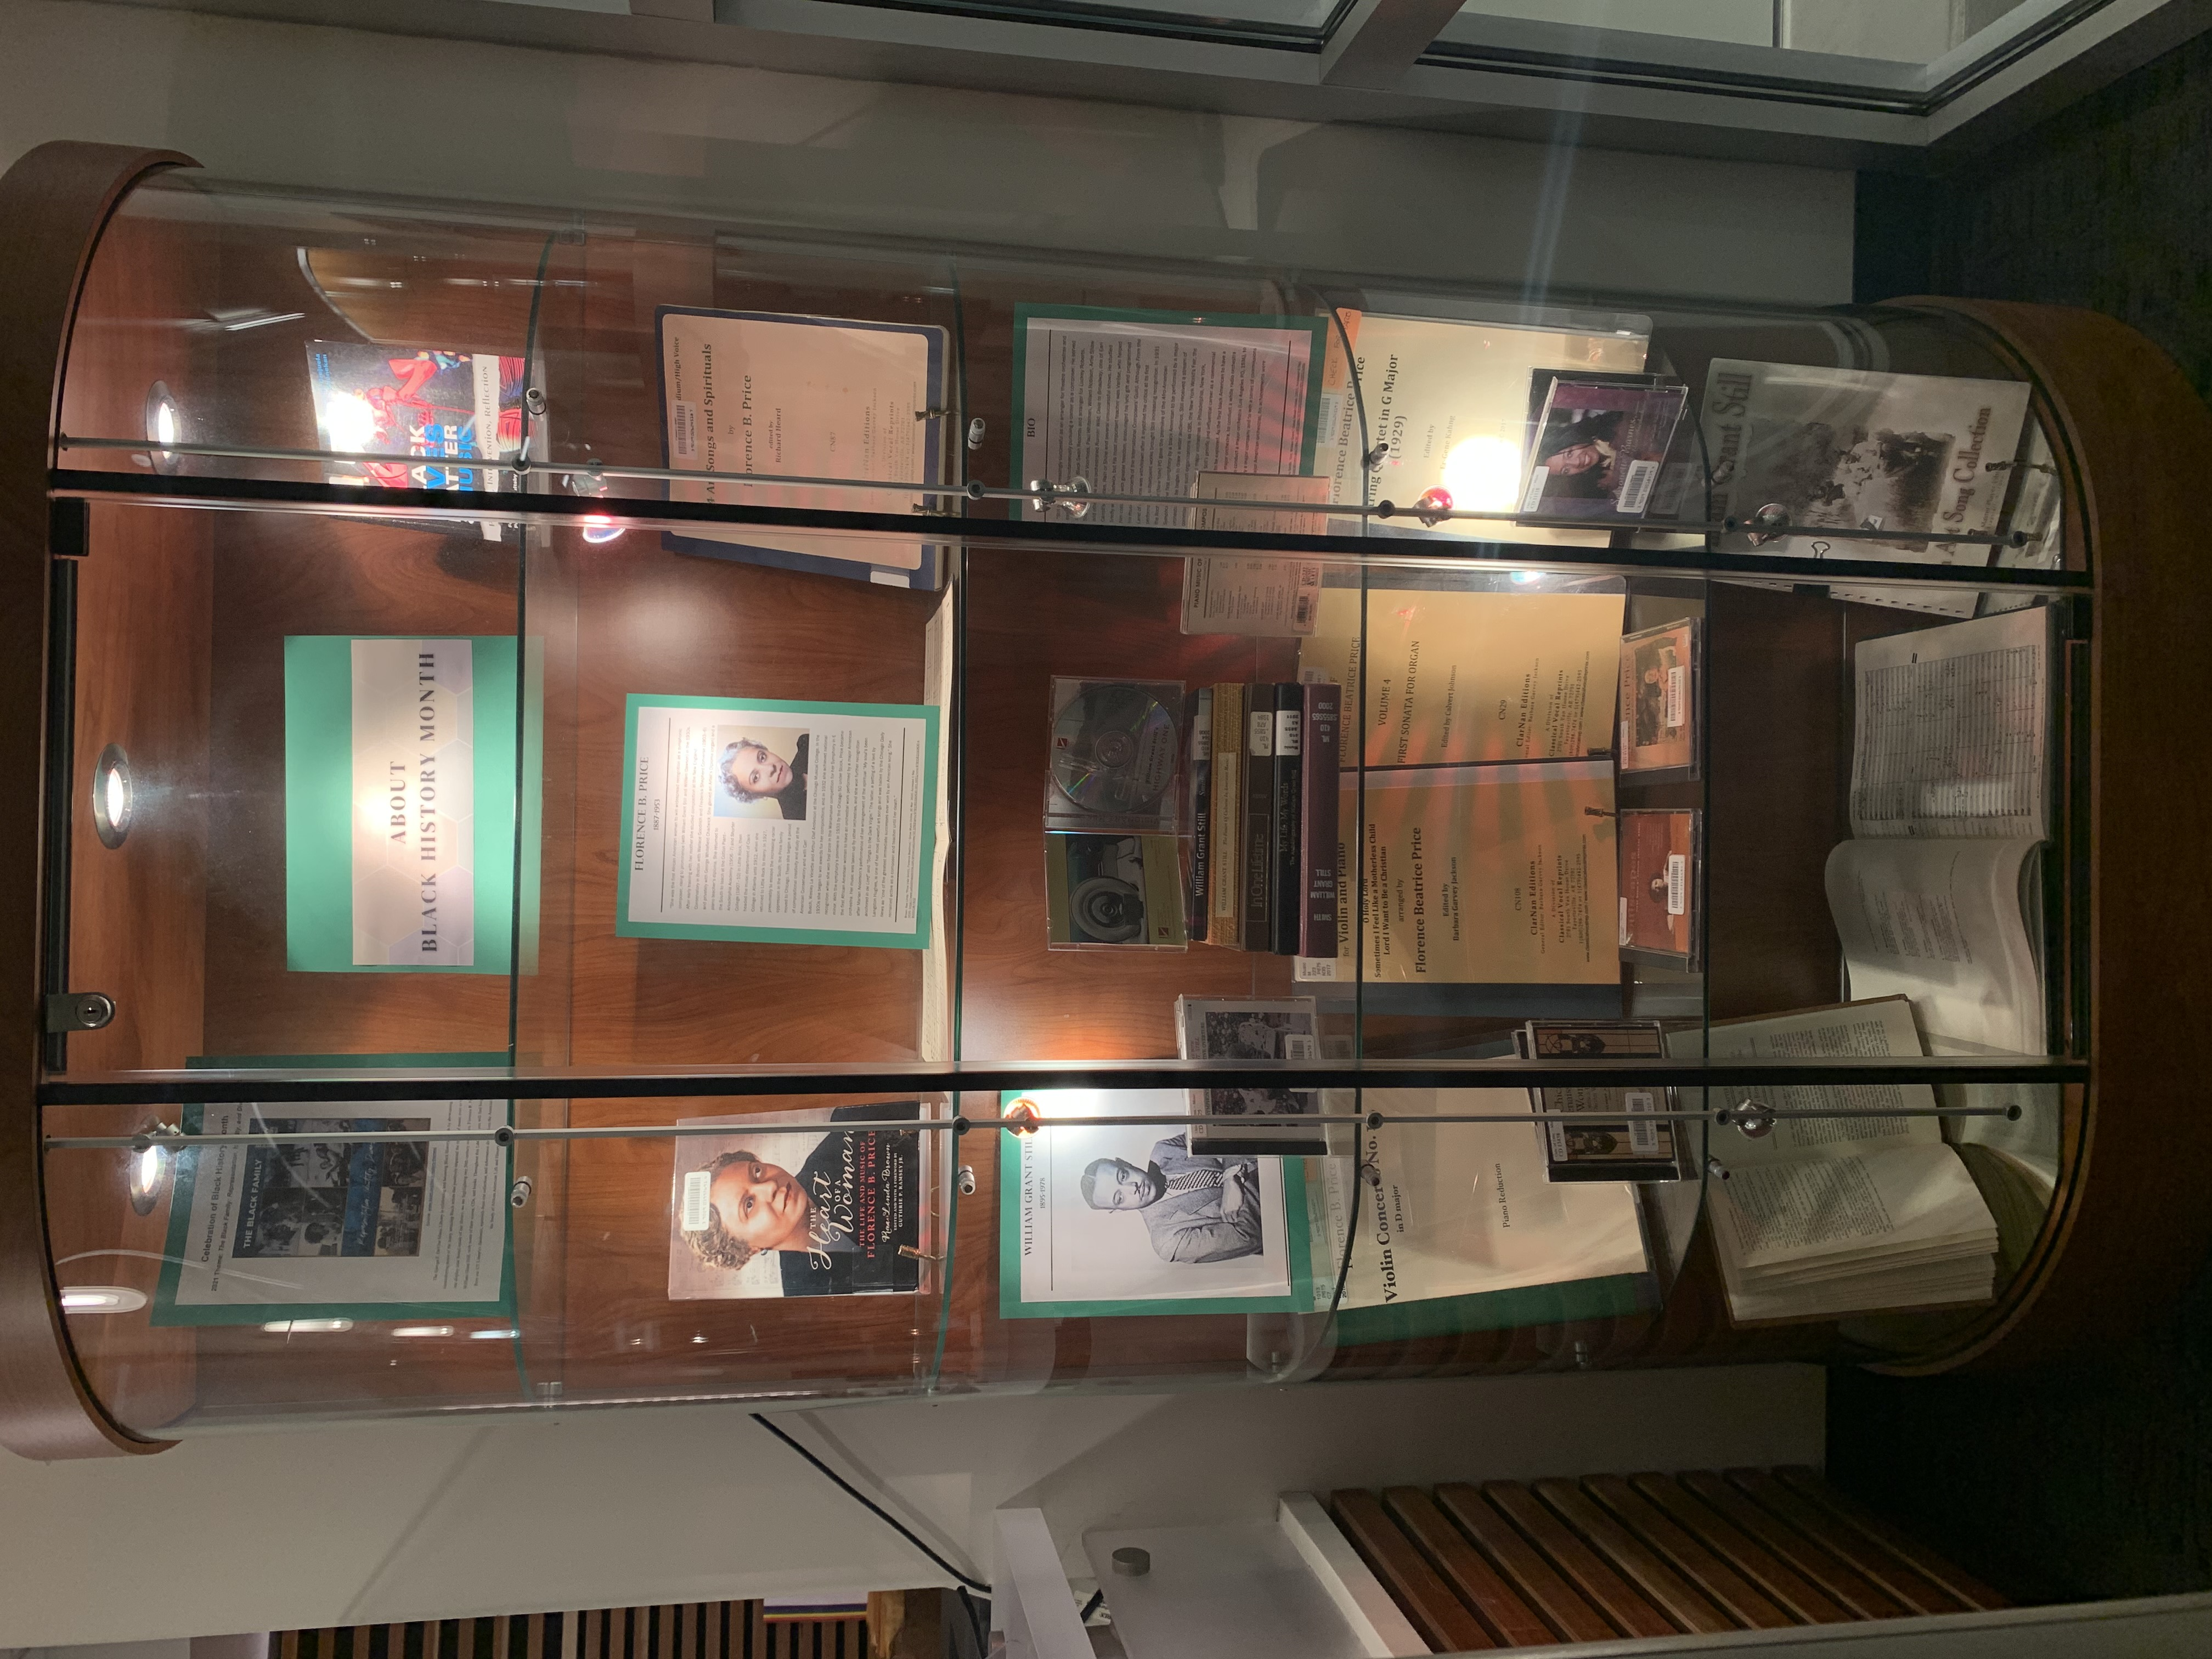 DeVine Display Case featuring Black History month materials